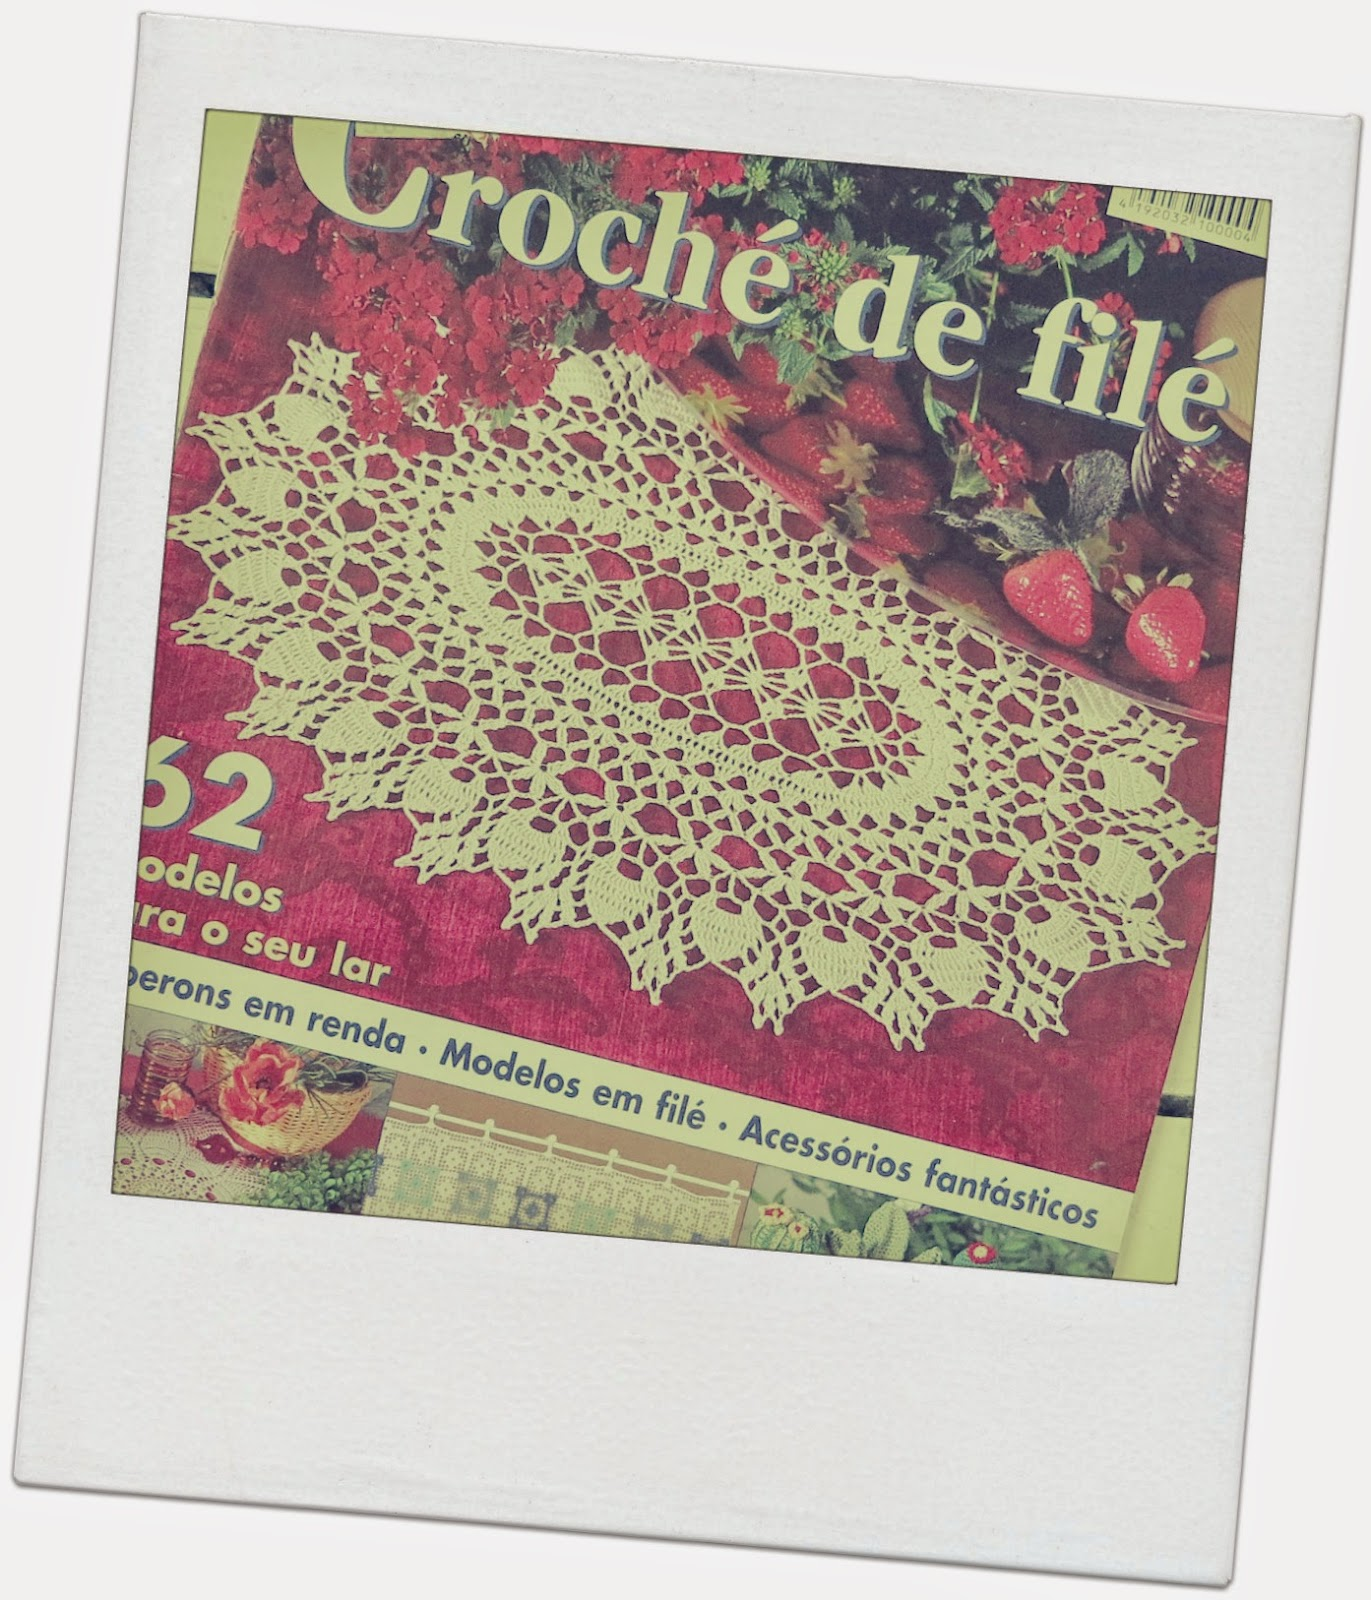 ByHaafner, Portuguese magazine, filet crochet